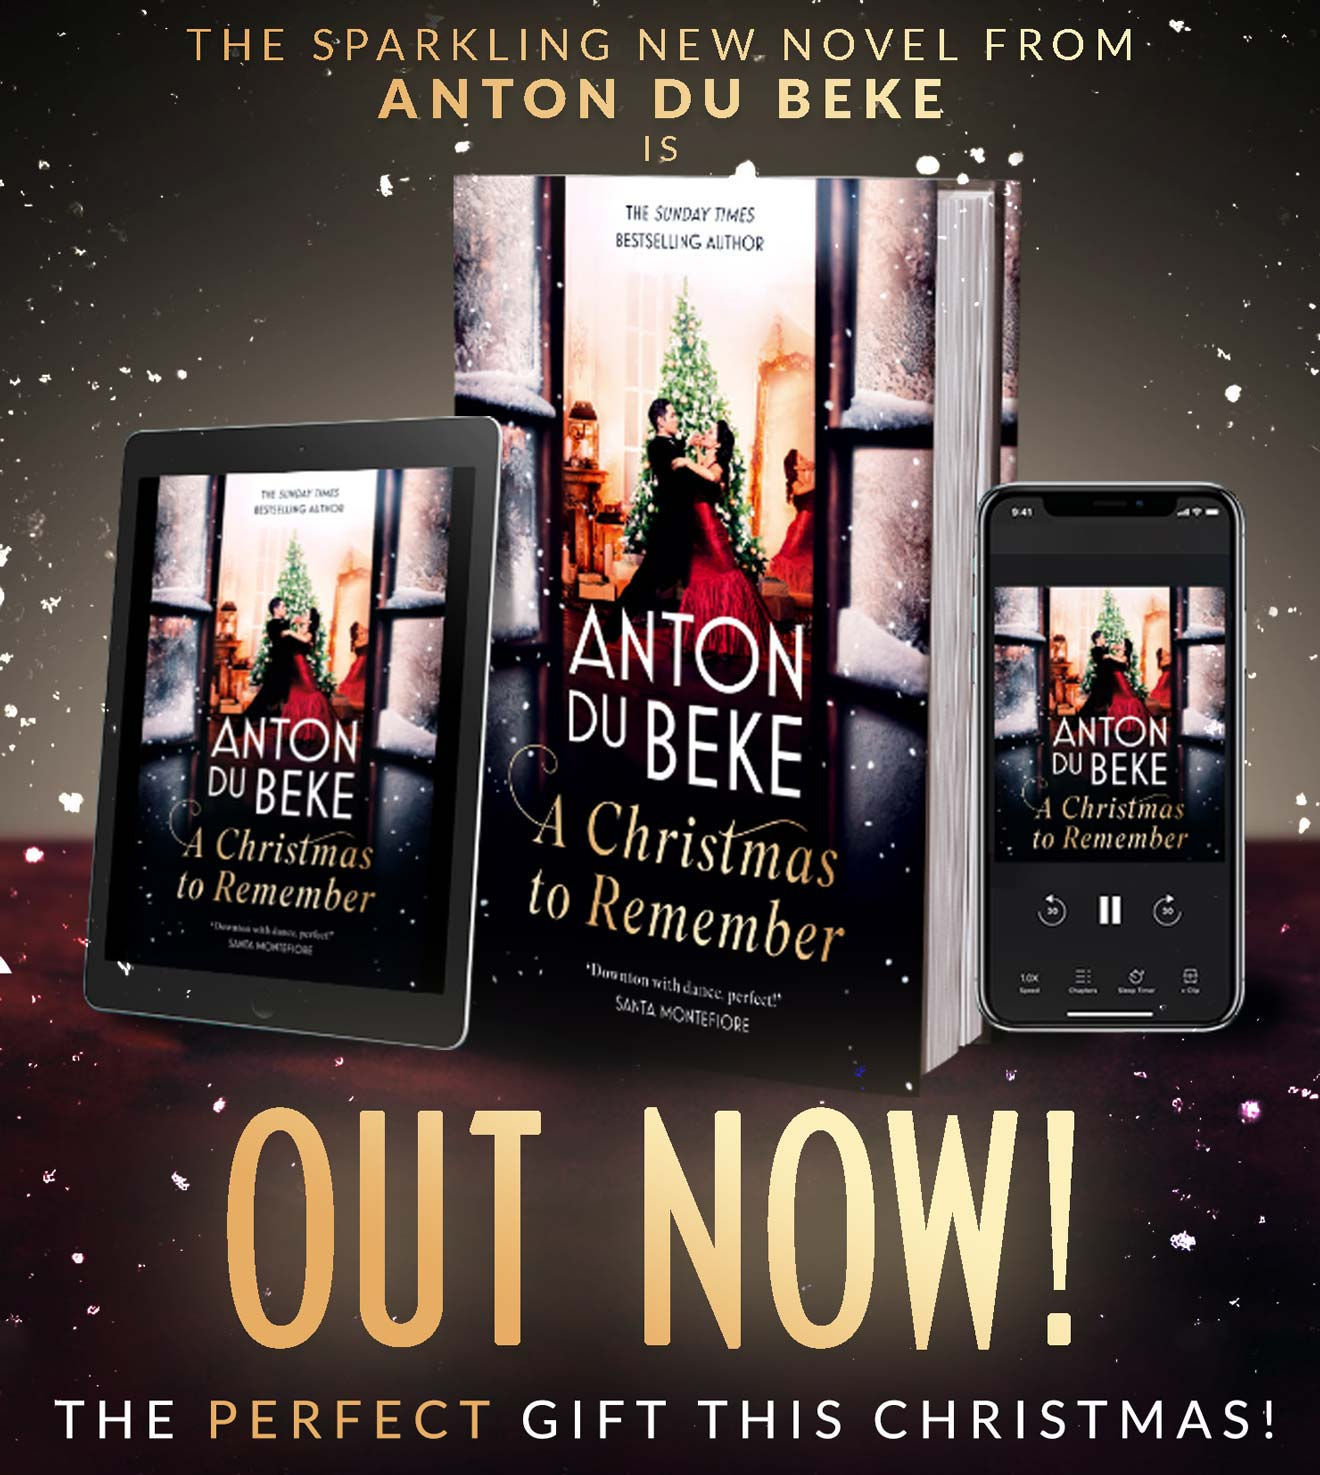 A Christmas to Remember is OUT NOW!